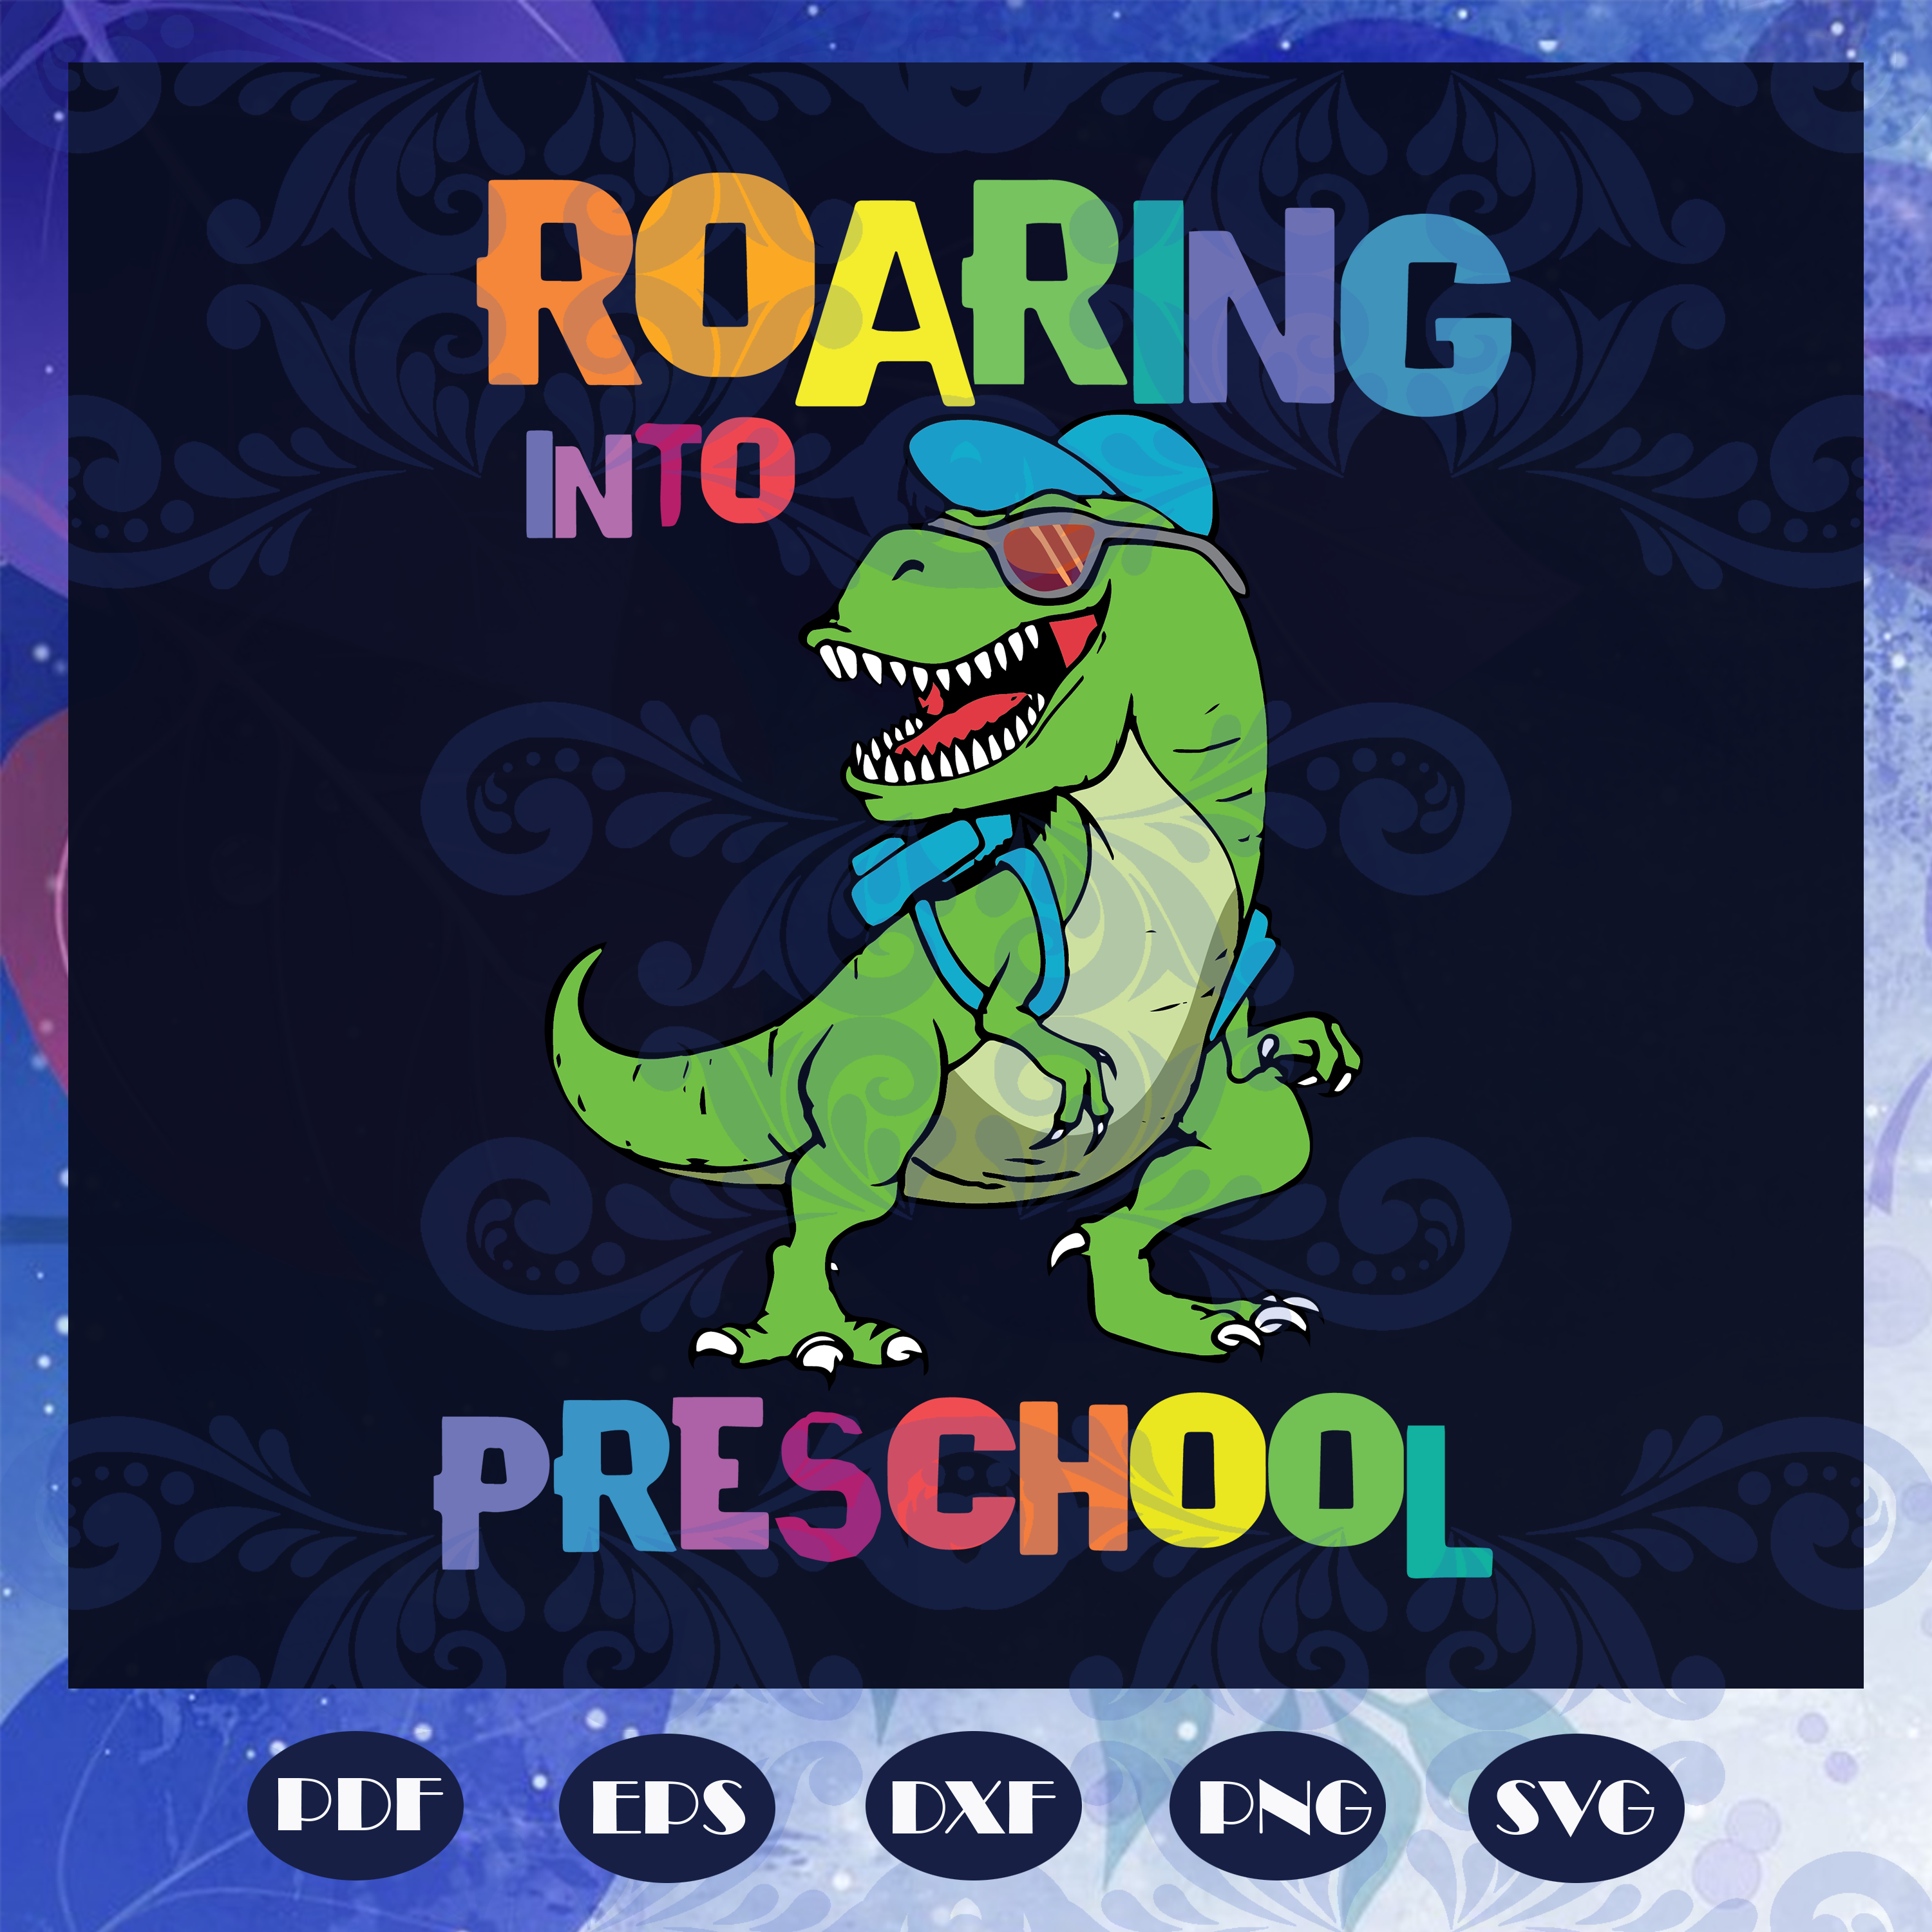 Roaring into pre school svg, come to pre school svg, pre school svg, prepare for pre school svg, students svg, primary school svg, class svg, dinosaur svg, back to school svg, files for silhouette, files for cricut, svg, dxf, eps, png, instant download